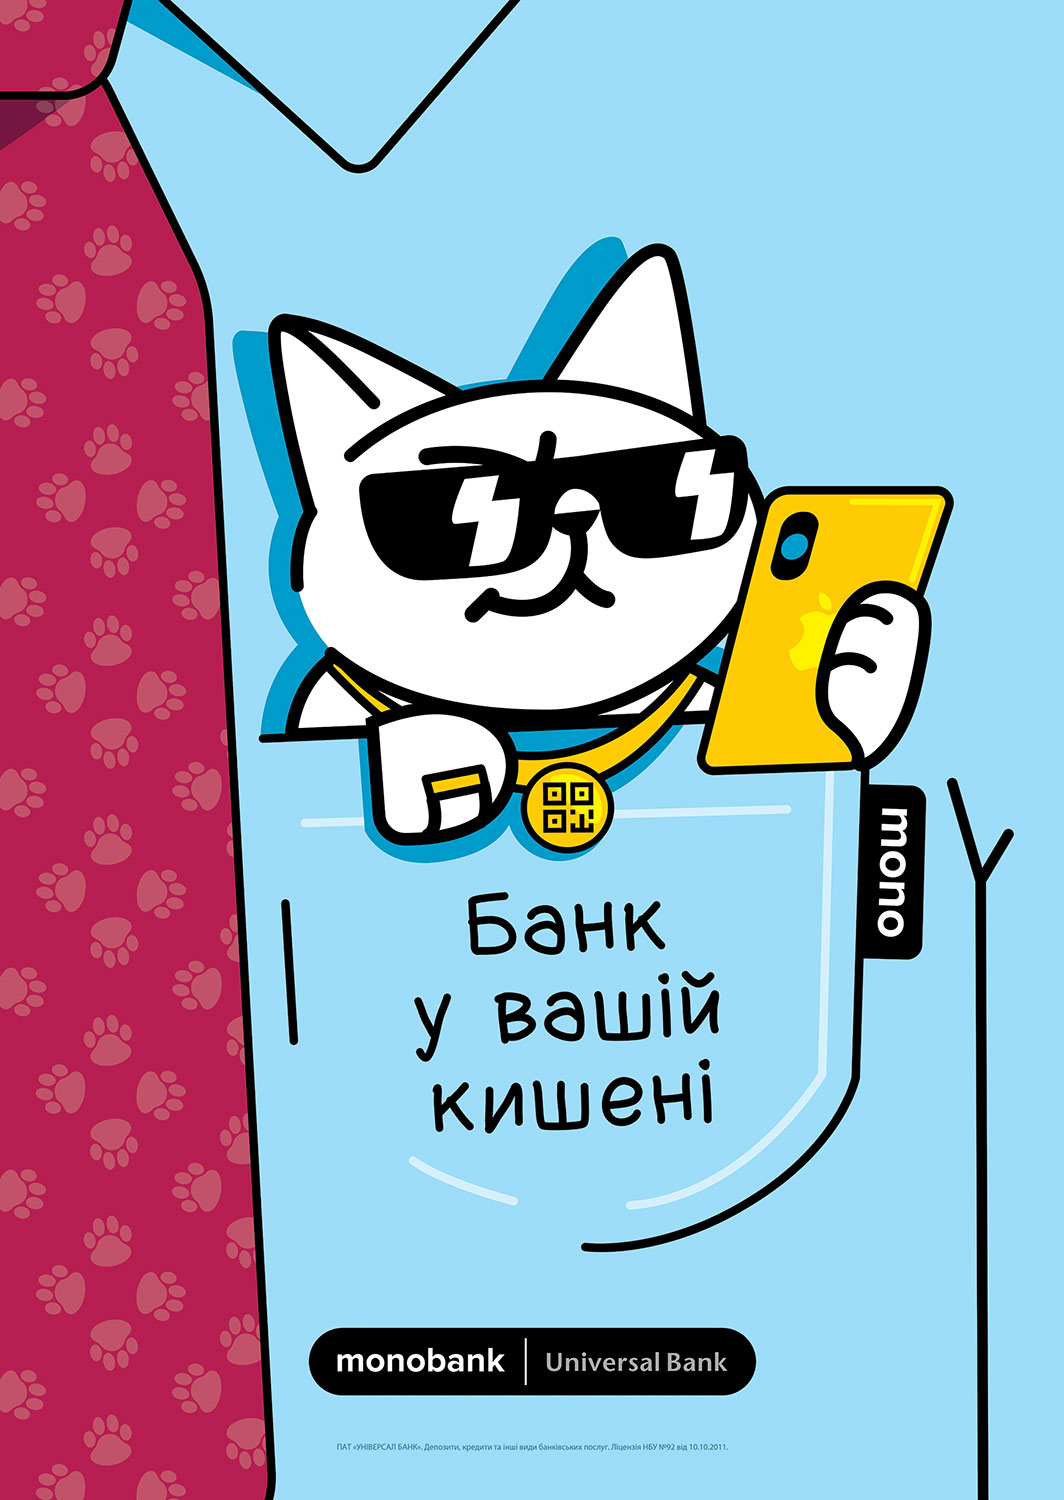 monobank is a bank in your pocket. A cool white cat wearing glasses and with a smartphone. QR cat and businessman illustration.